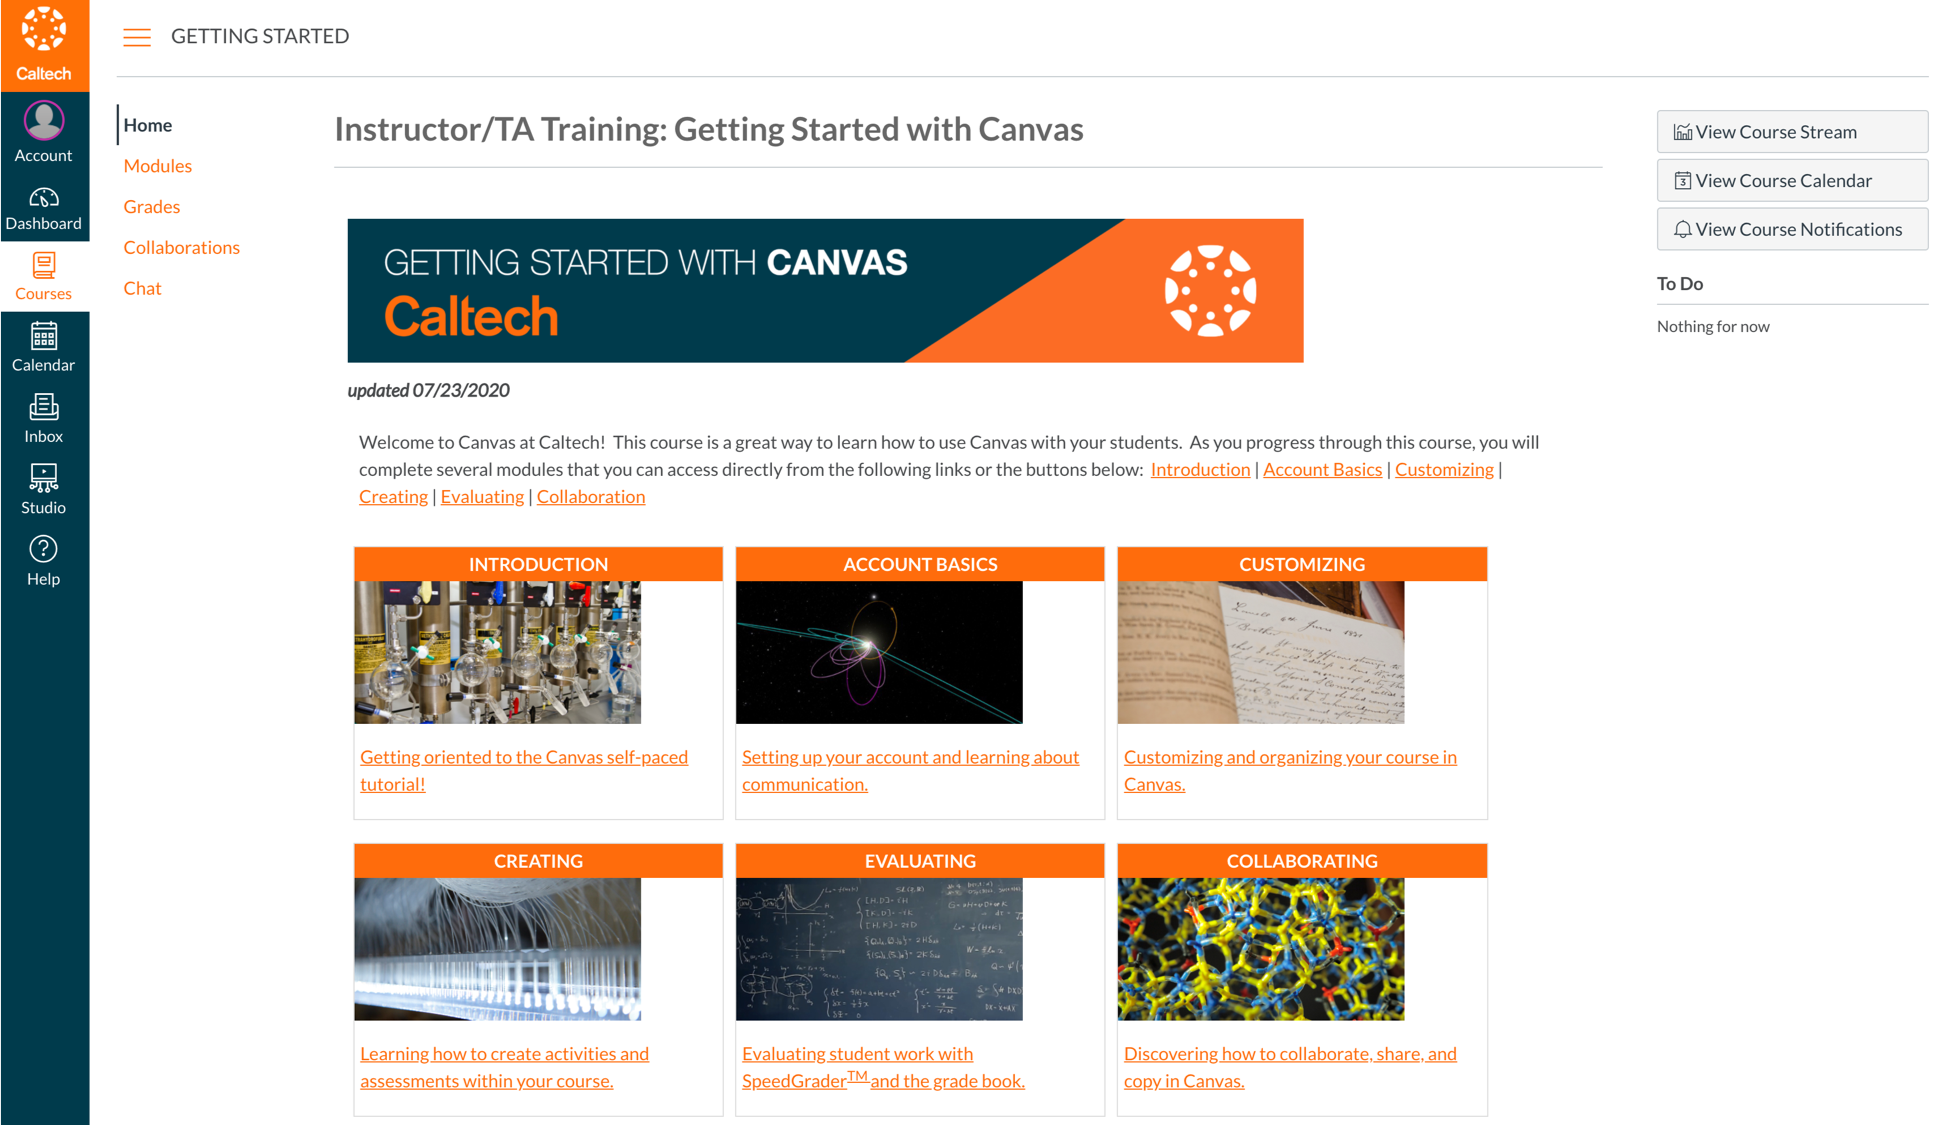 A screen image preview of Caltech's Canvas instance, showing a landing page for a Getting Started with Canvas course for instructors and TAs